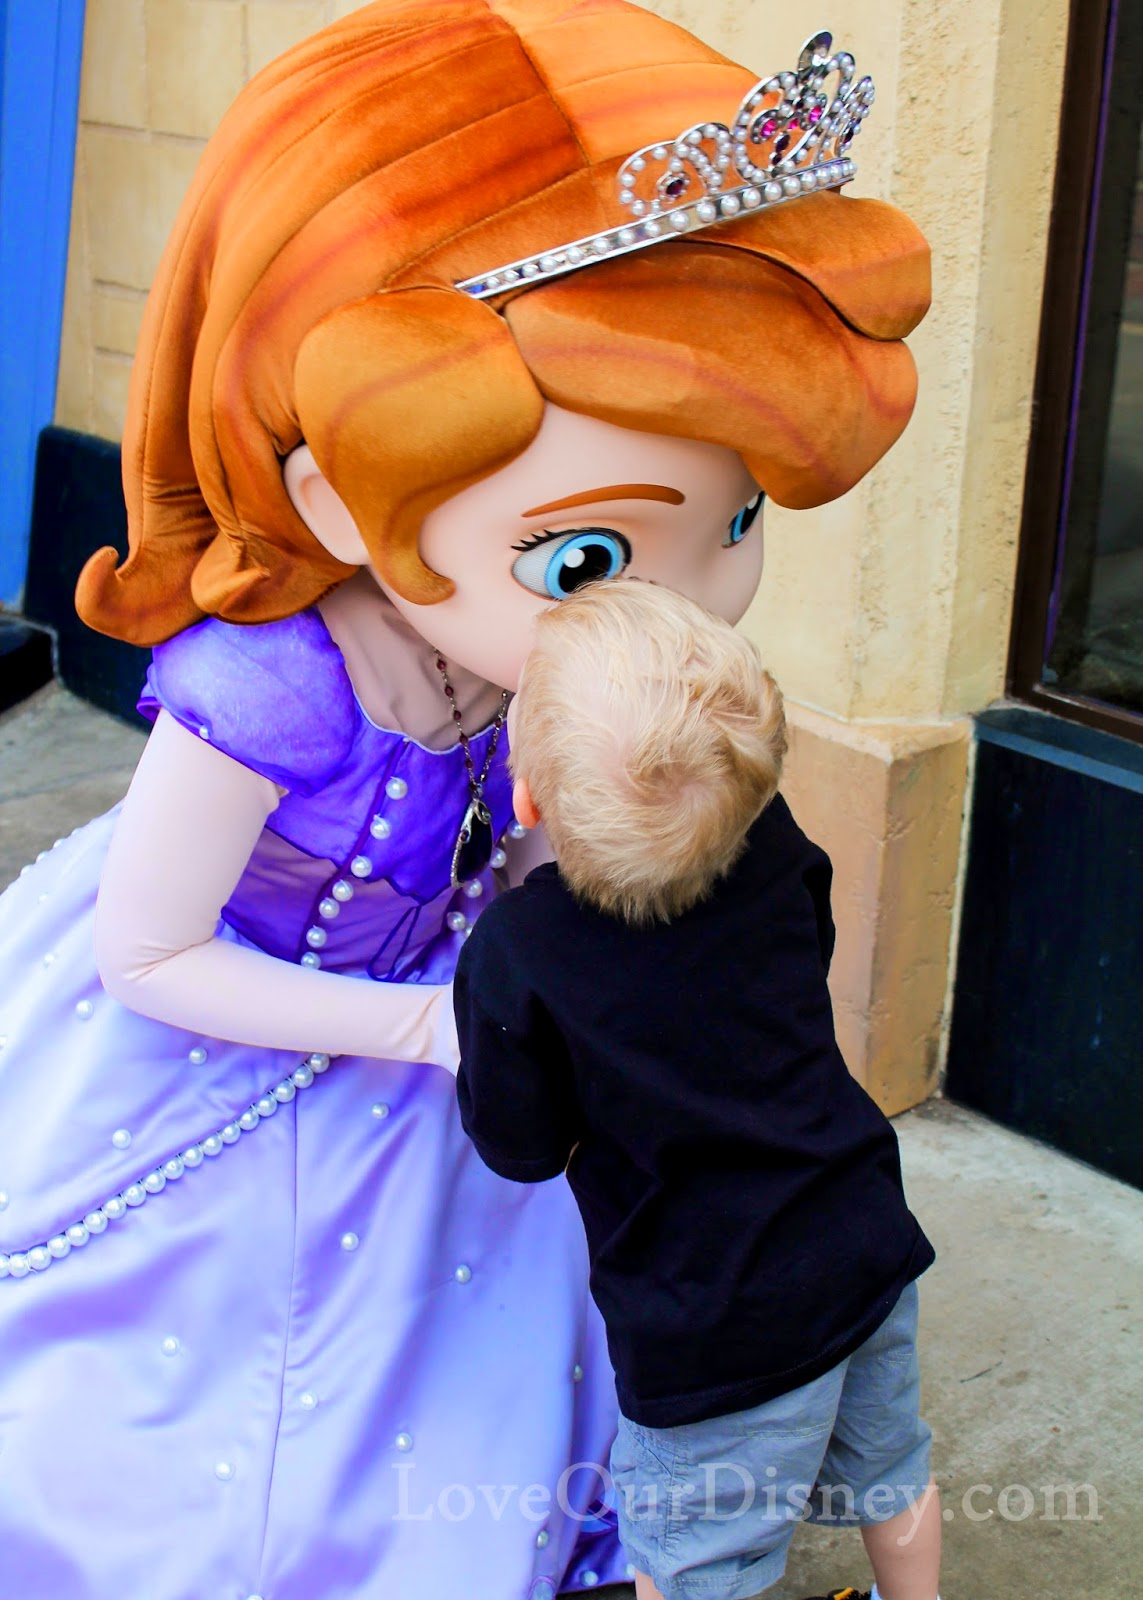 How to find those hard to find Disneyland characters during your vacation. LoveOurDisney.com